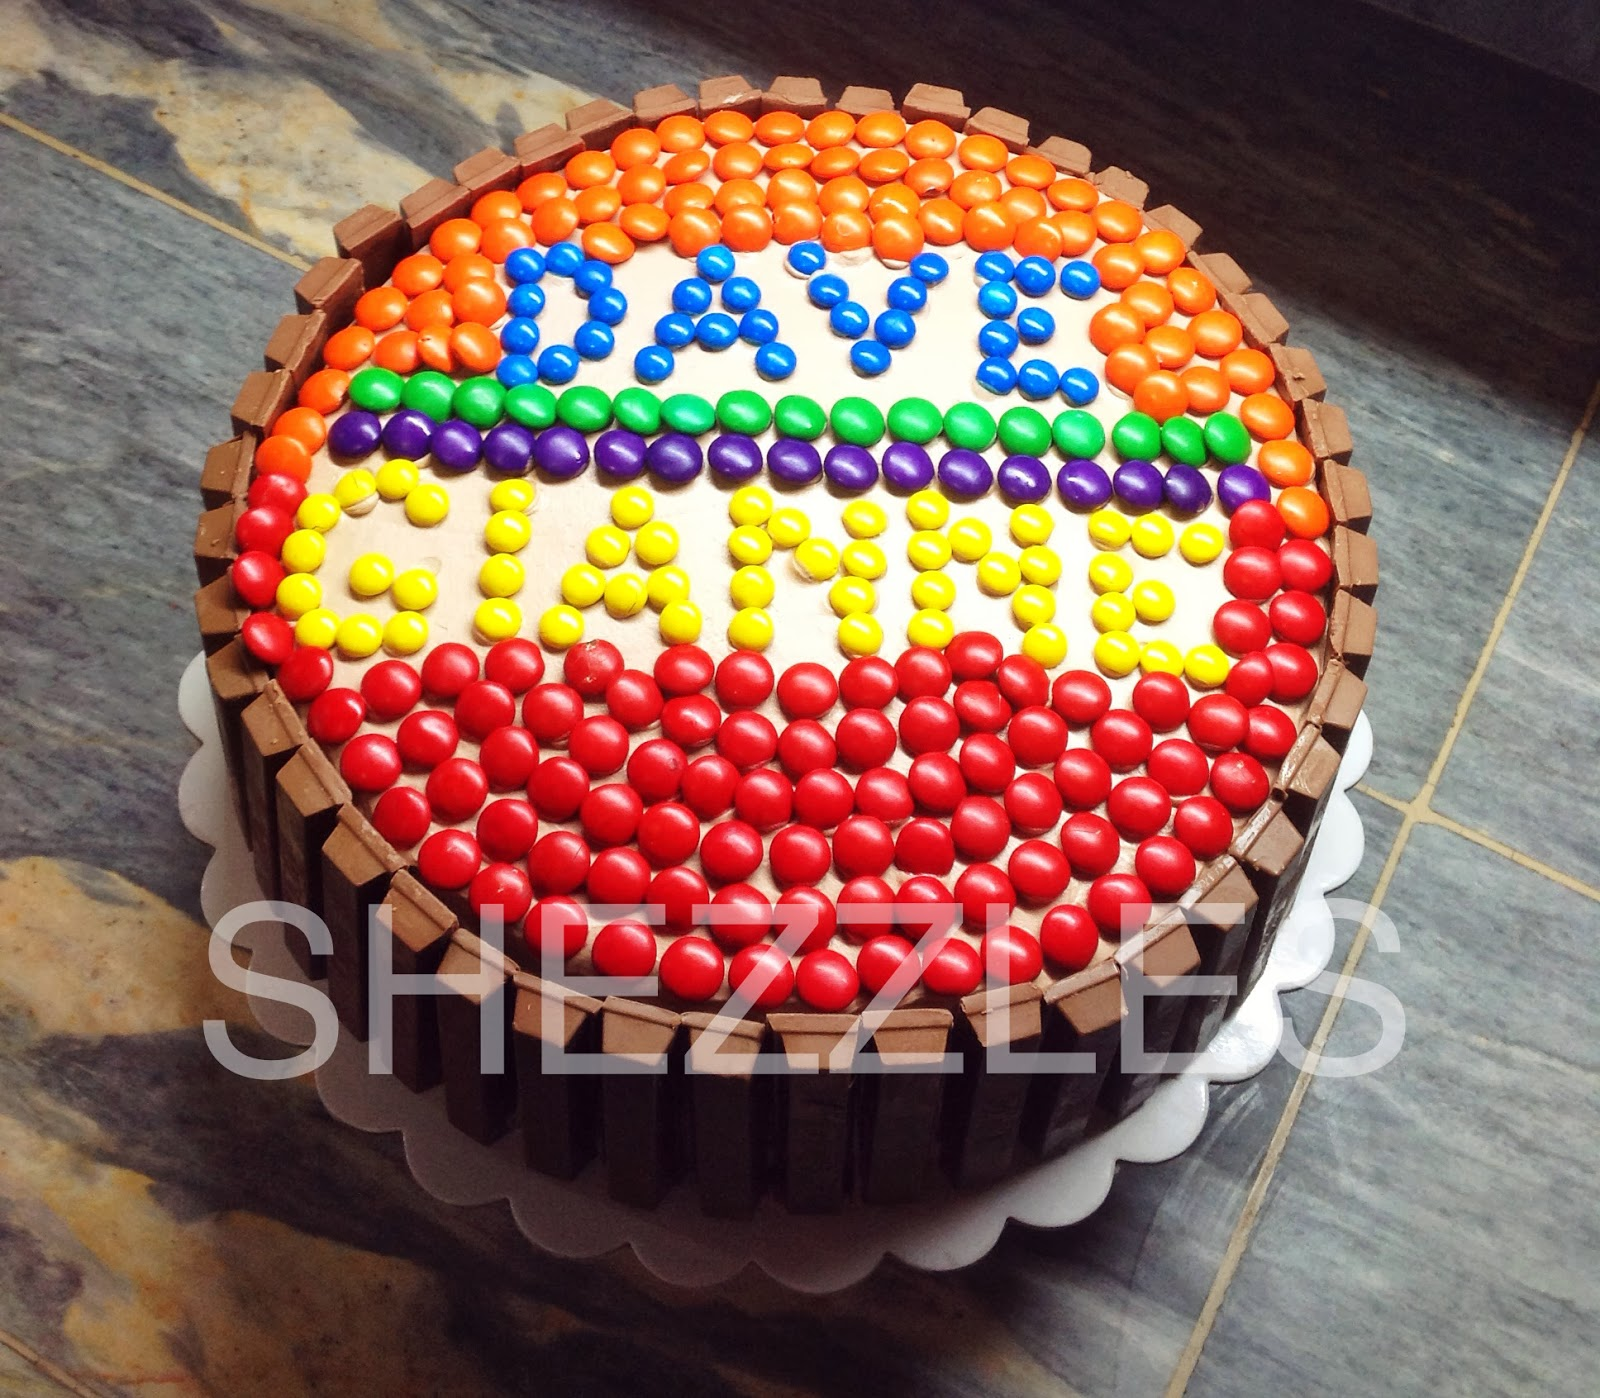 What Better Way To Celebrate Birthday Than Eat Chocolate Cake Special Order Of Kit Kat With The Names Formed Using Colored Candies For Our